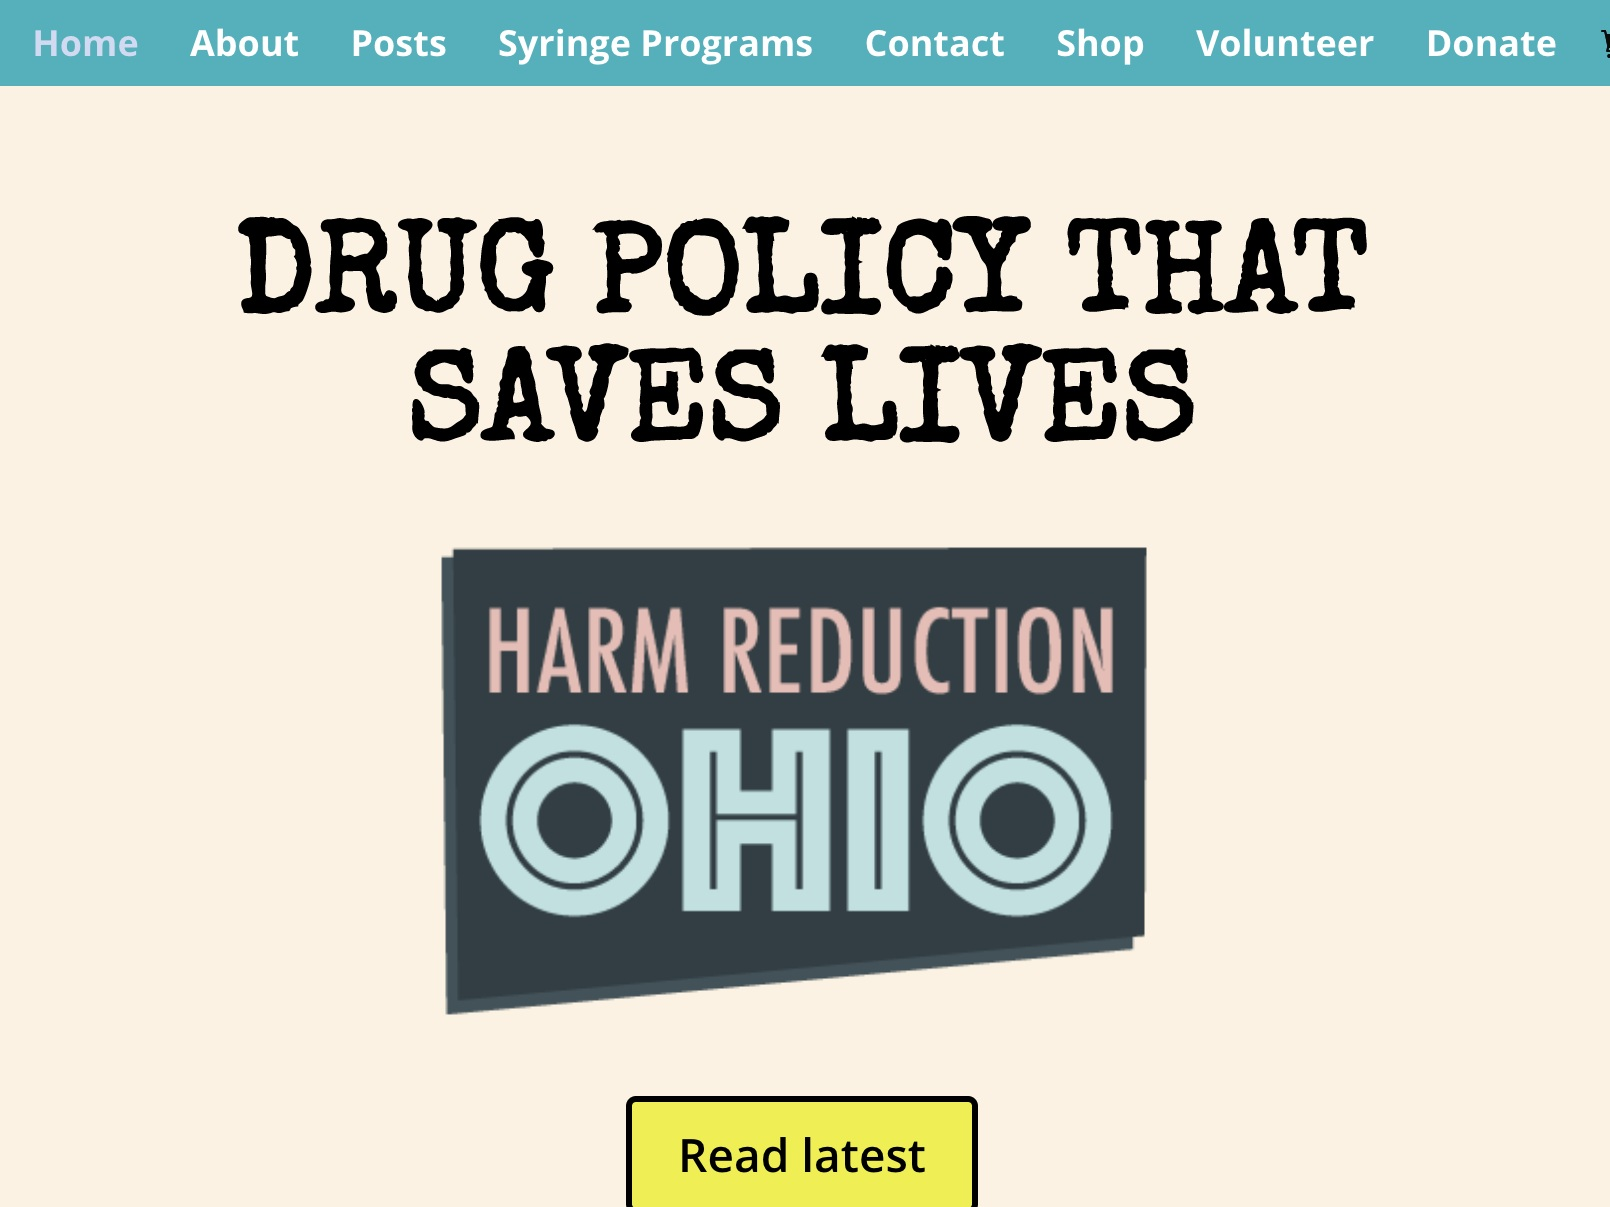 Harm reduction ohio - Harm Reduction Ohio (HRO) works to promote health equity through compassionate, nonjudgmental services, educate the public, policymakers and medical community about treating drug users with respect and without stigma, and end the criminalization of people who use drugs. HRO is NEXT Naloxone's Ohio affiliate.